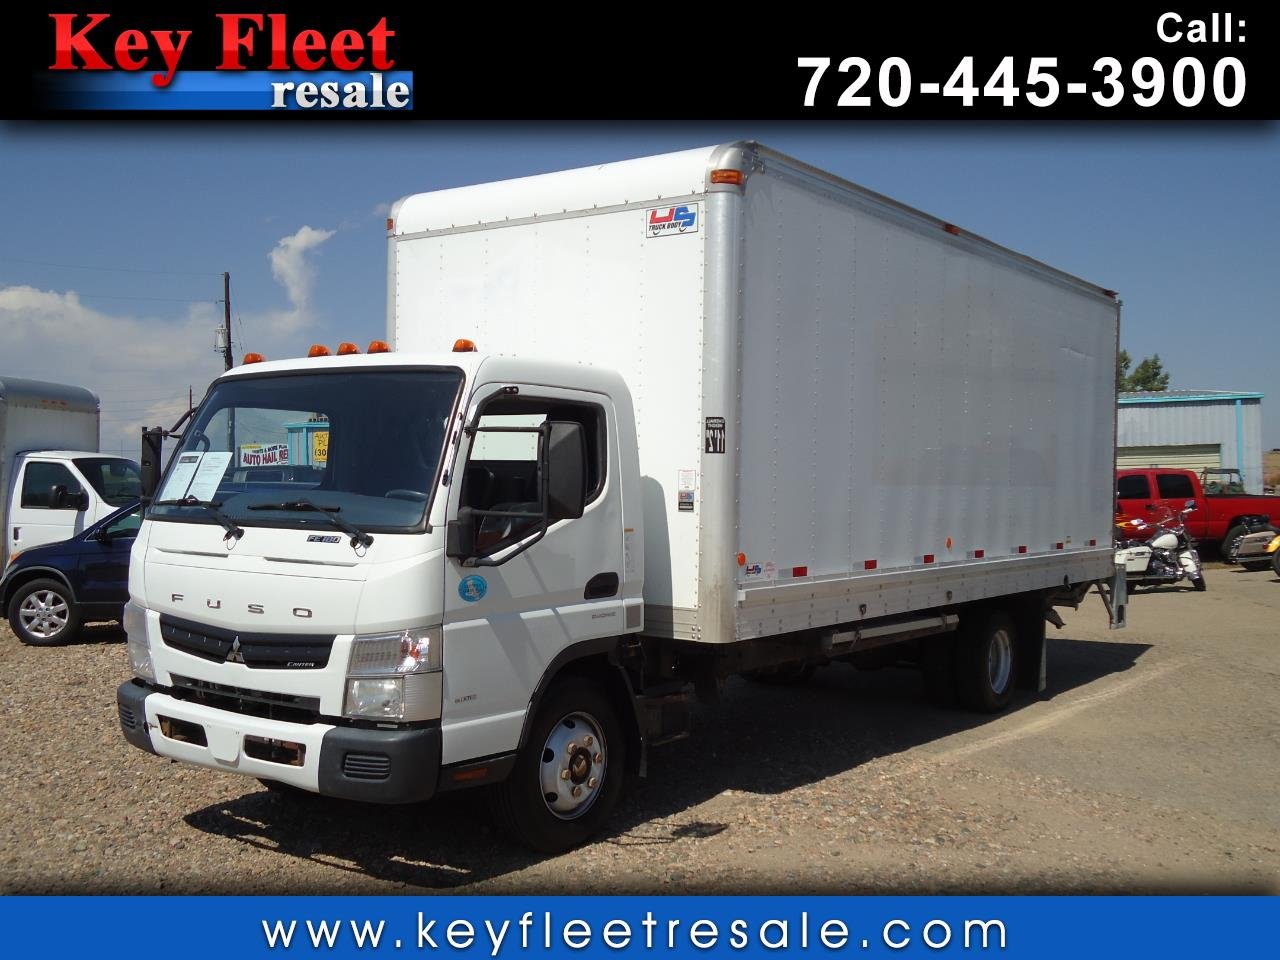 2014 Mitsubishi Fuso FE 20 Foot Box Truck with Lifgate